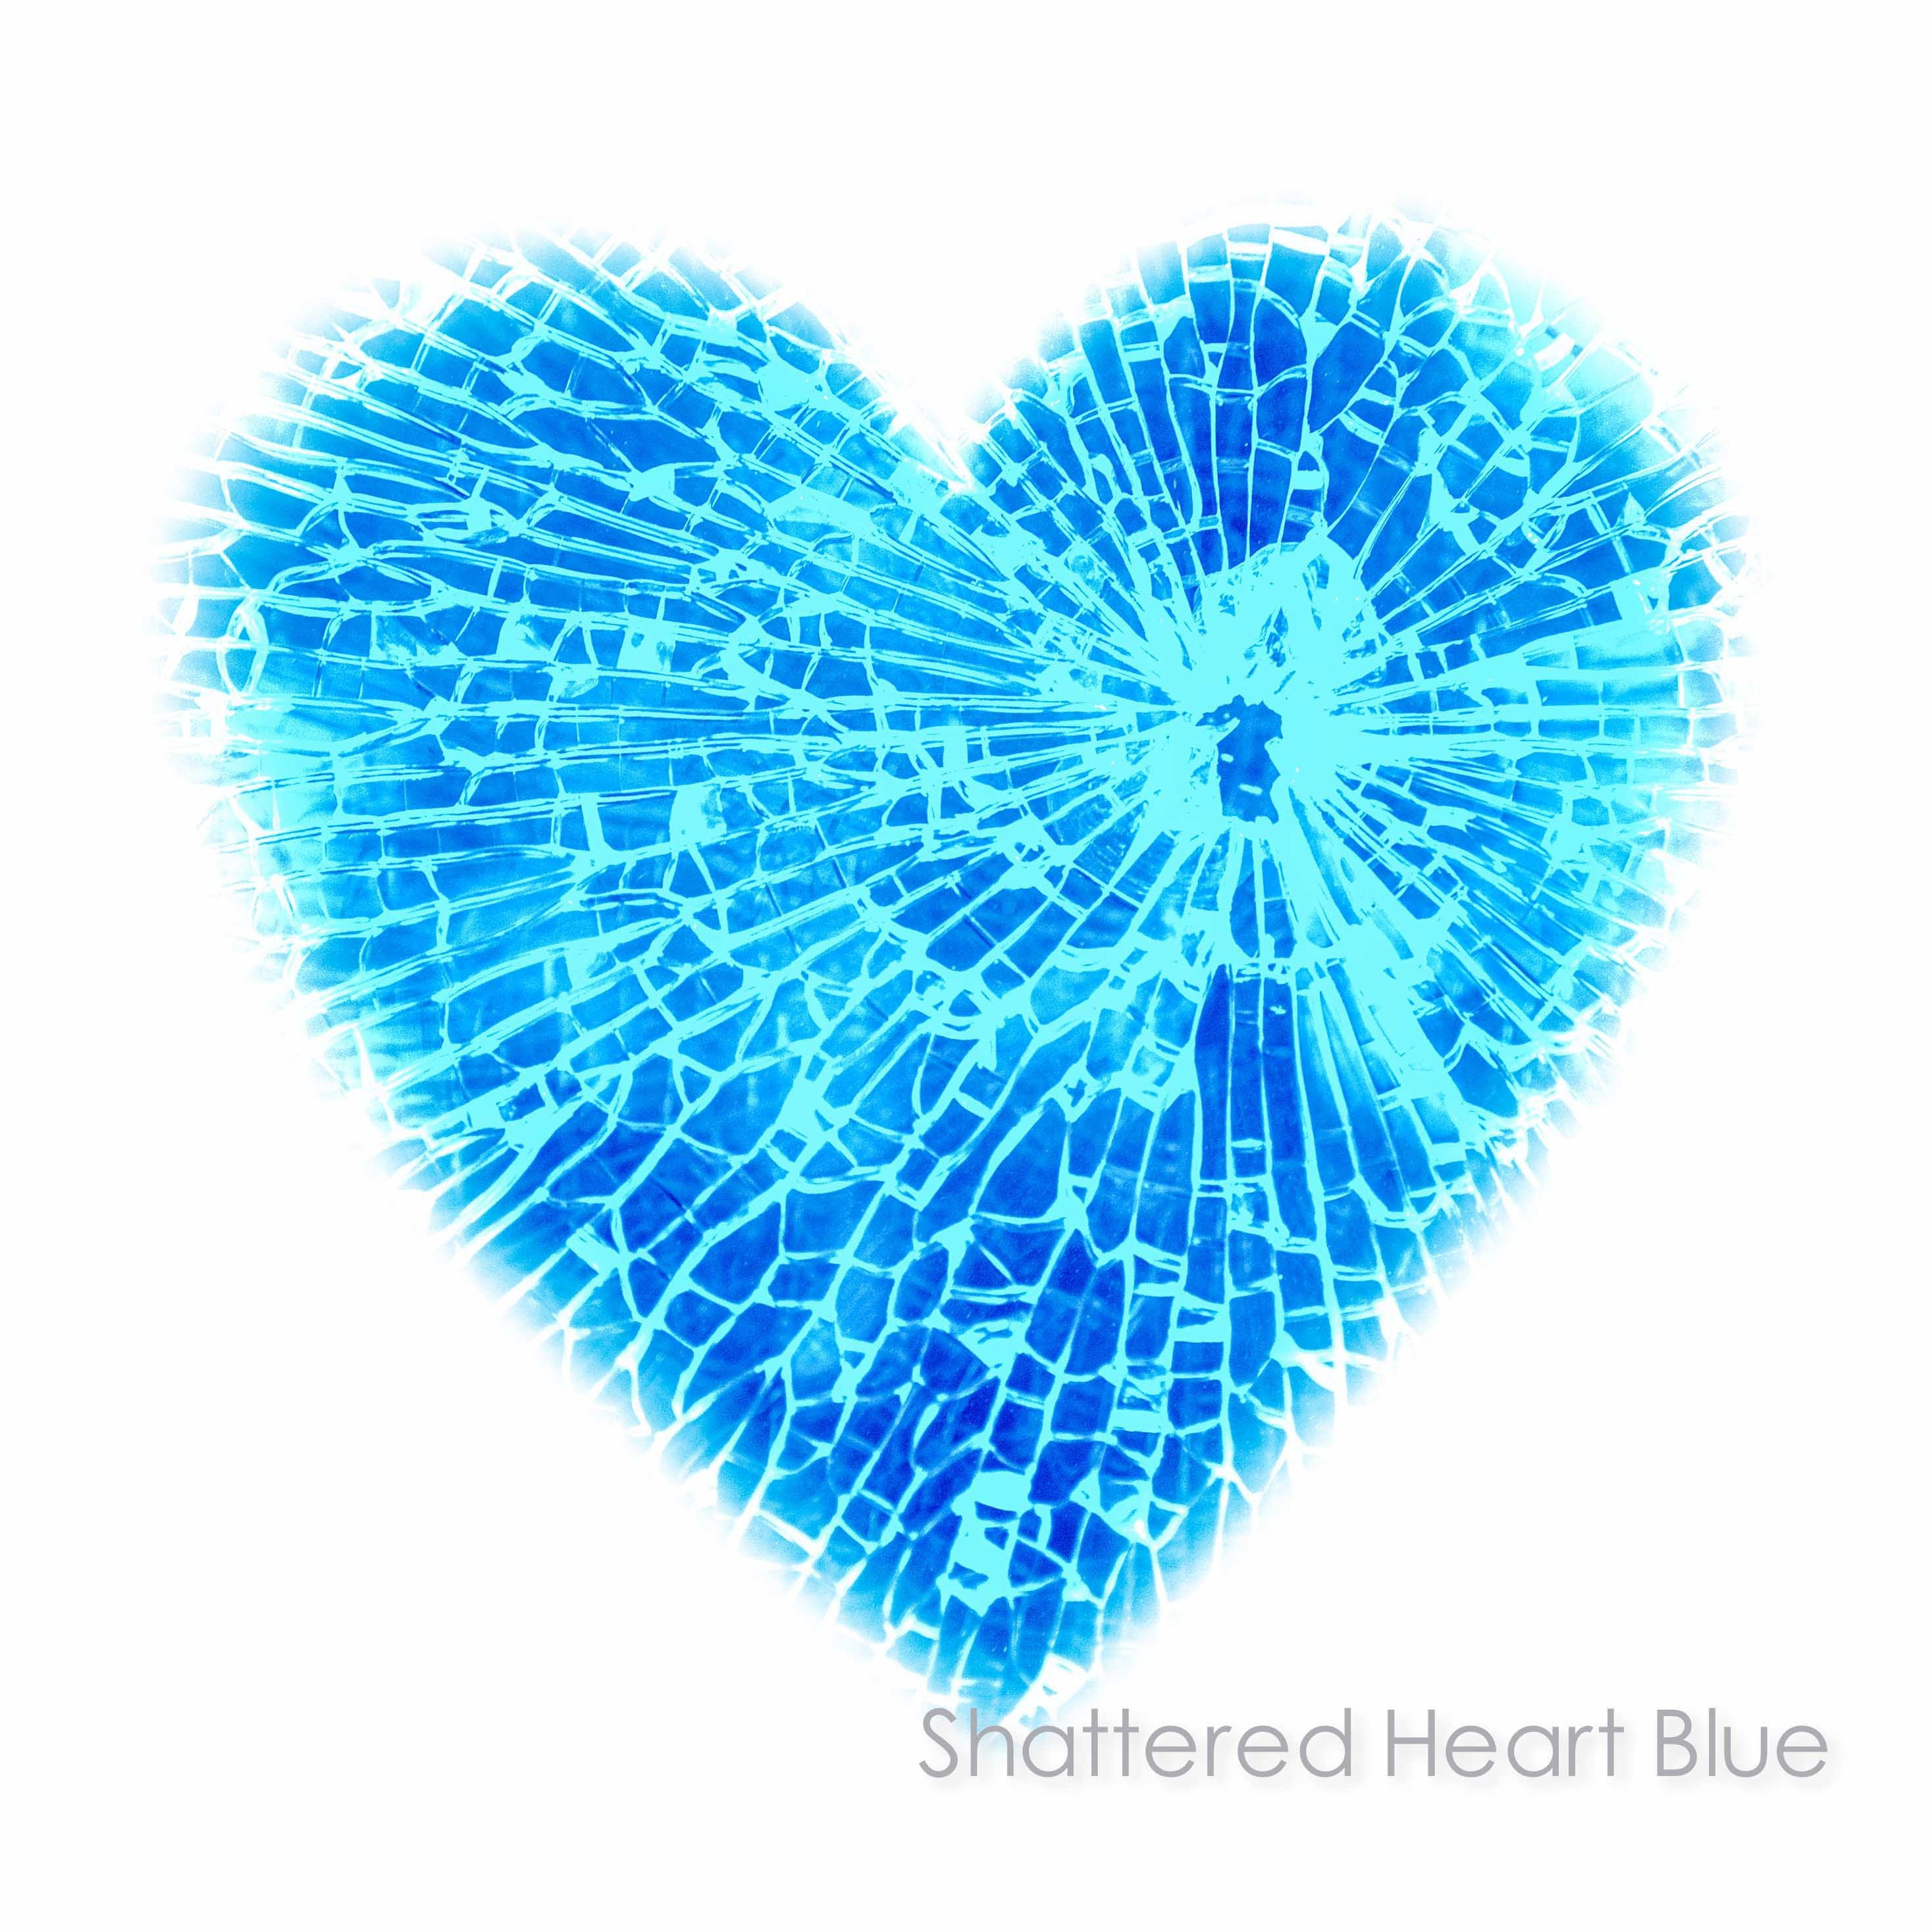 blue heart on white background with shattered glass bullet hole effect- available in limited edition unframed heart prints and ready to hang wall art